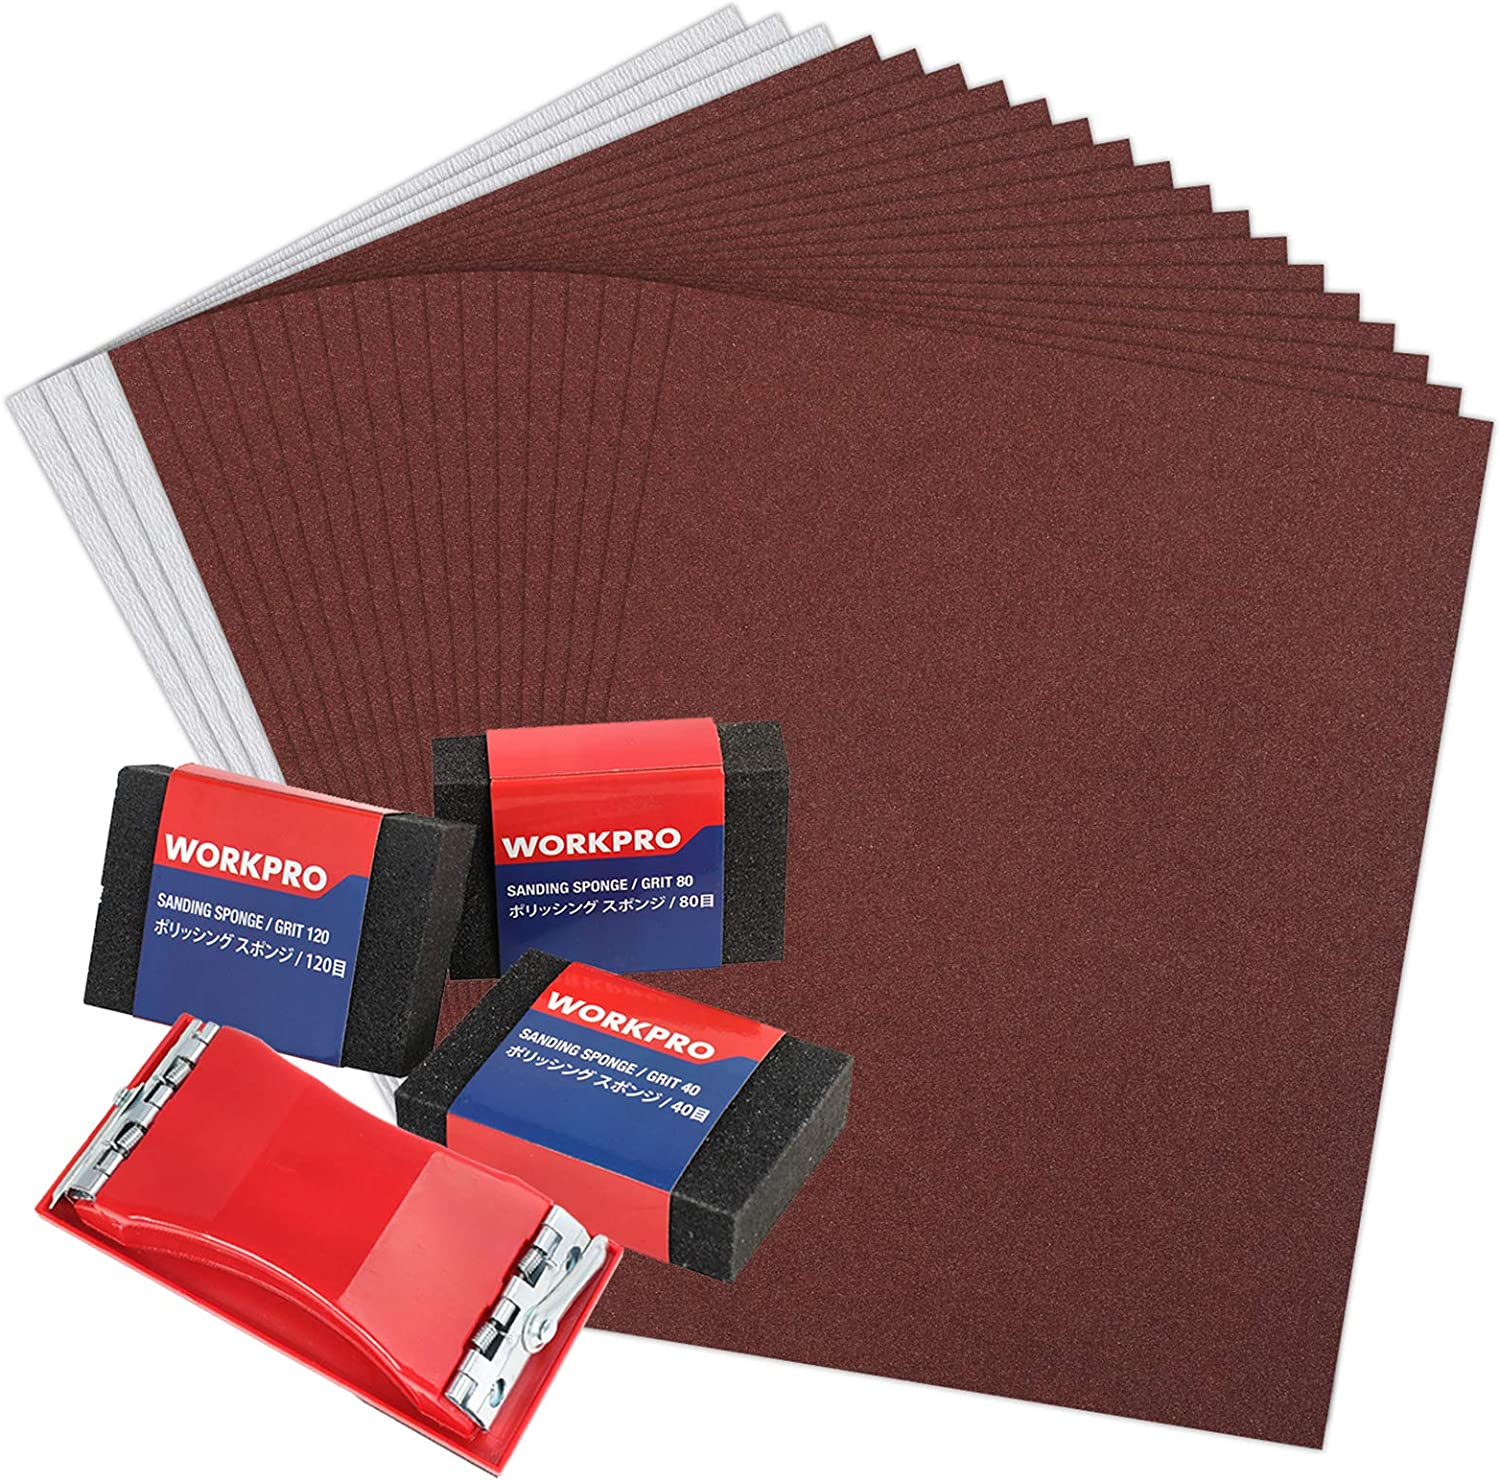 WORKPRO 24 Piece Sandpaper 80-600 Assorted Grit with Holder, Sand Sponges 40/80/120 Grit, Alumina Sand Paper for Wood Furniture Finishing, Metal Sanding, Paint Finishing